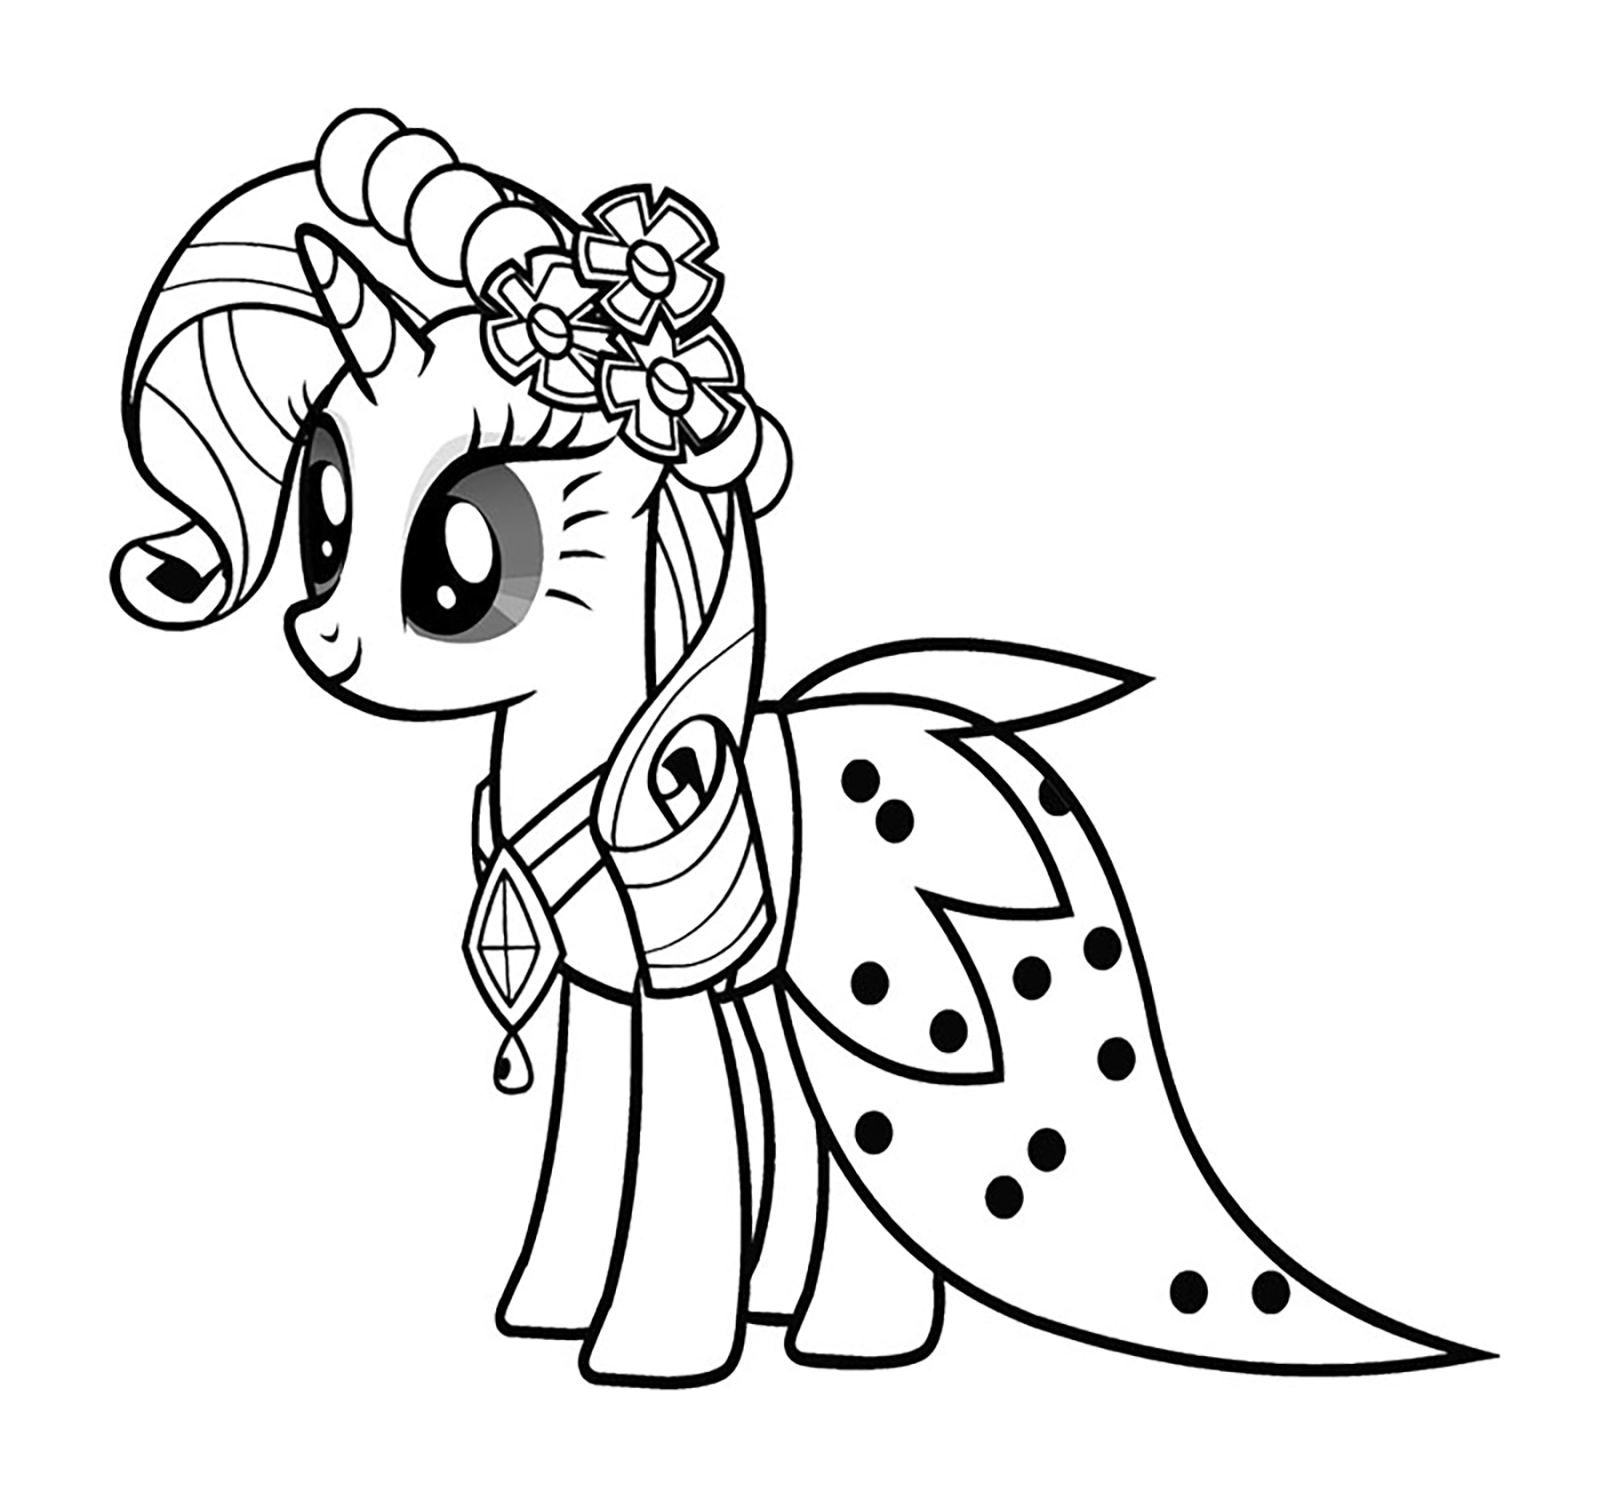 th?id=OIP.R8ju2QP3P7bMw924h0GOKwECDy&pid=15.1 moreover my little pony coloring pages of rarity 1 on my little pony coloring pages of rarity also with my little pony coloring pages of rarity 2 on my little pony coloring pages of rarity besides my little pony coloring pages of rarity 3 on my little pony coloring pages of rarity also my little pony coloring pages of rarity 4 on my little pony coloring pages of rarity